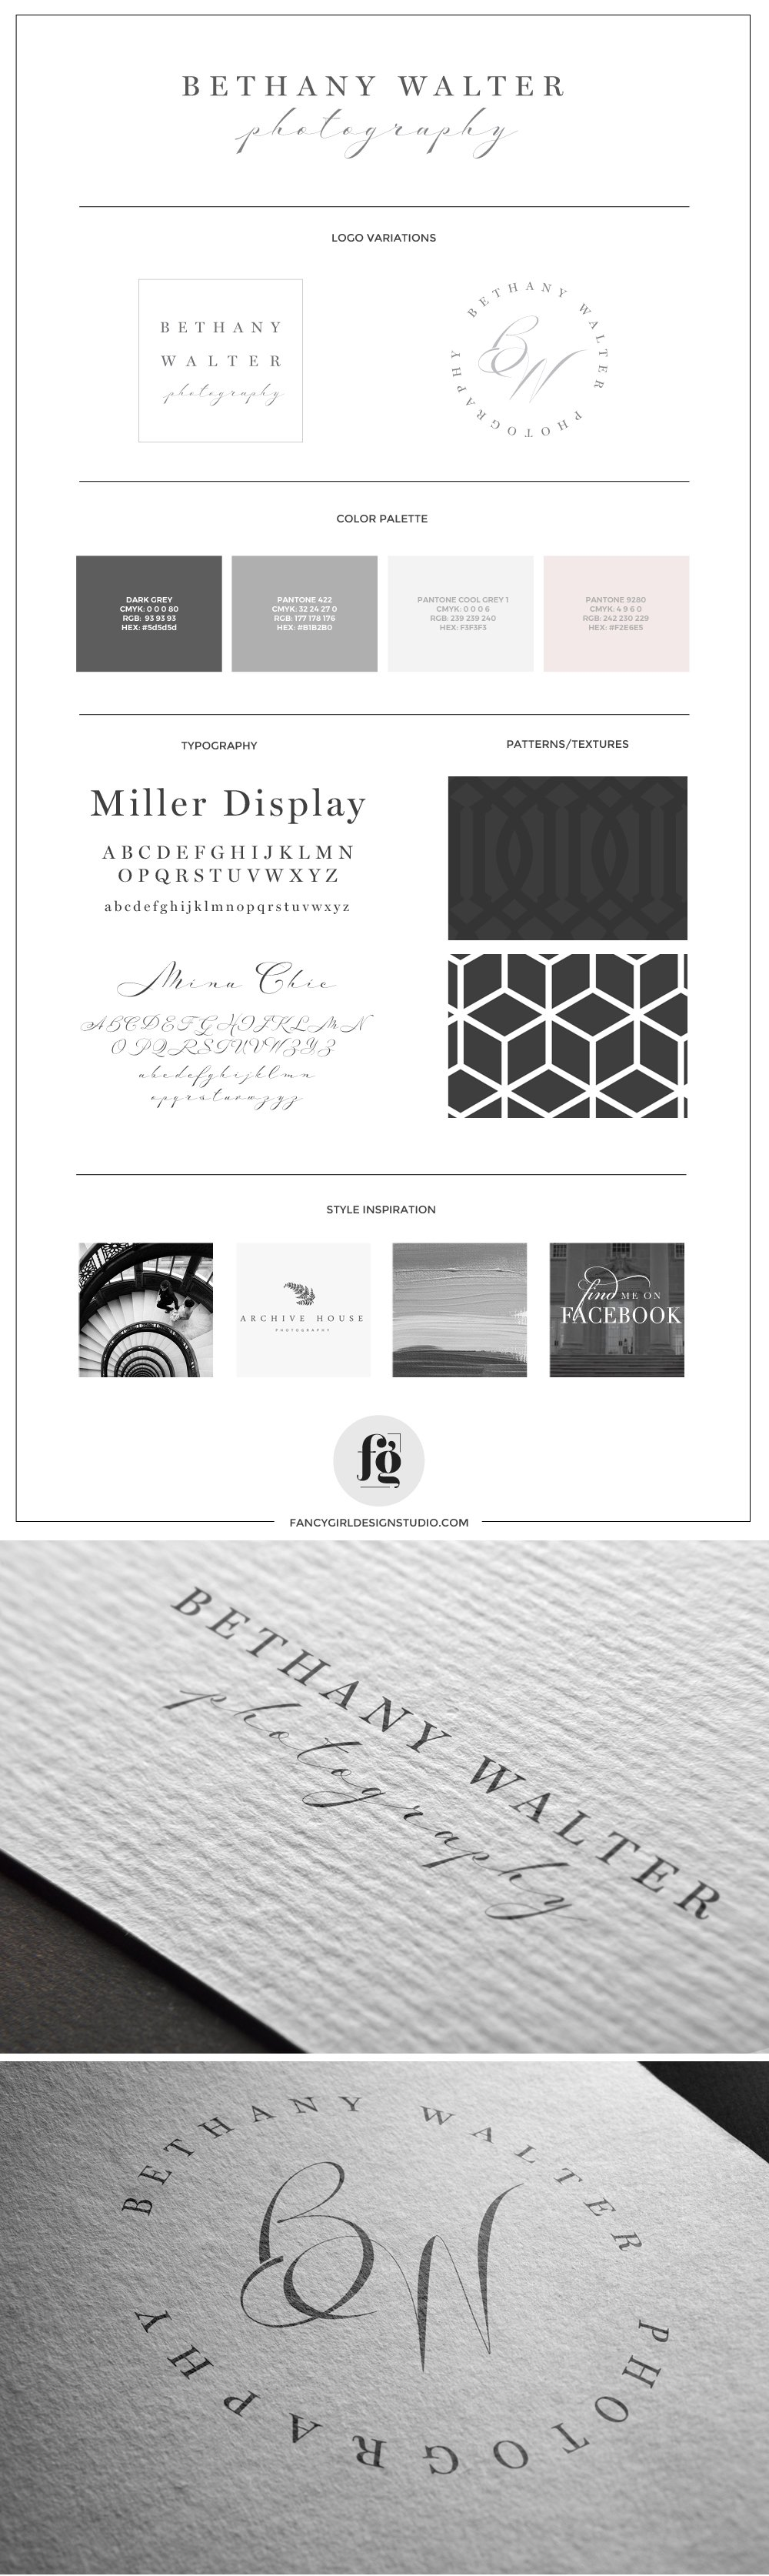 Brand Board for Bethany Walter Photography, by Fancy Girl Design Studio